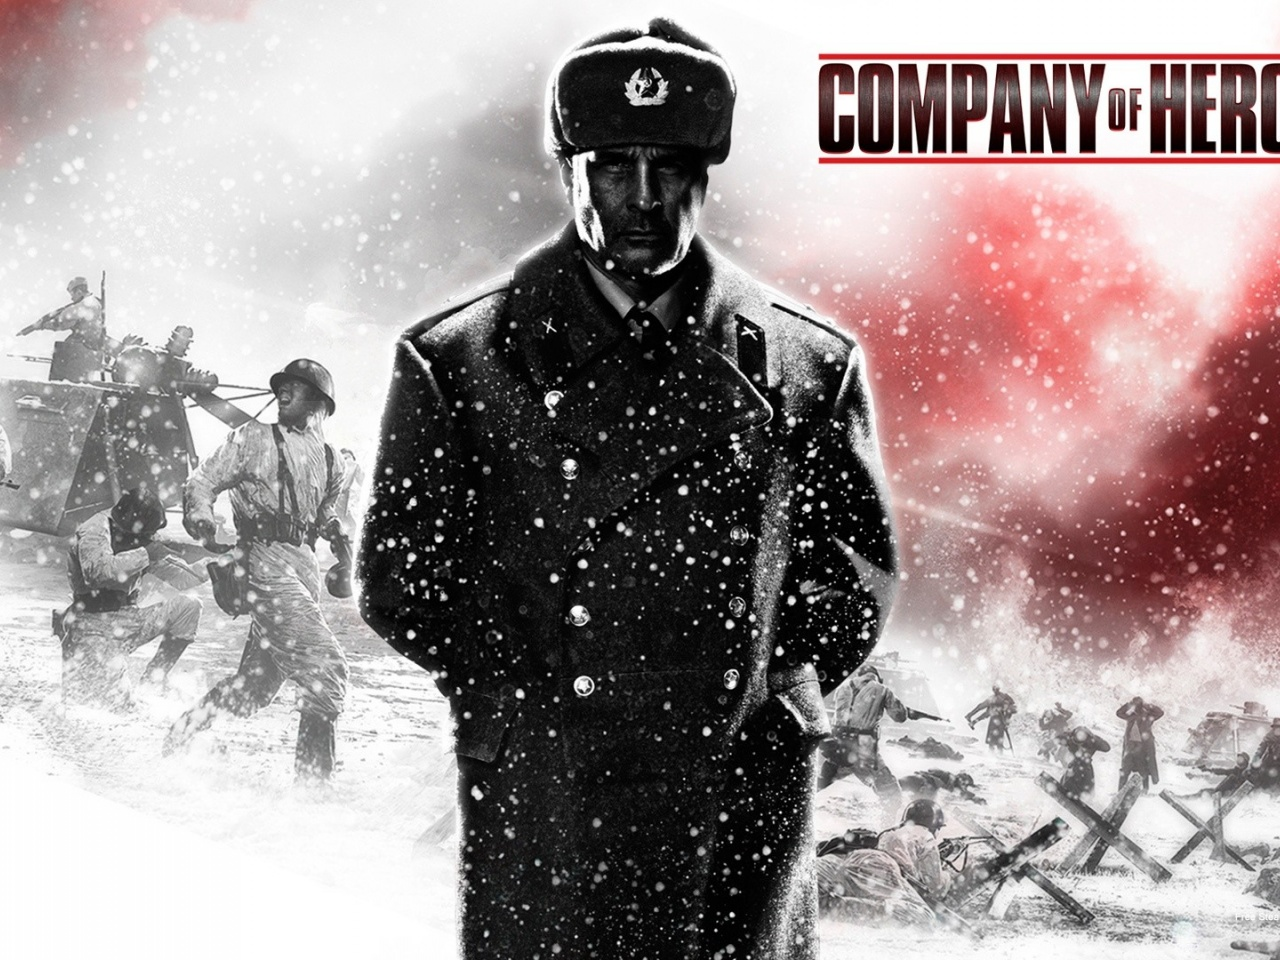 1280x960 2013 Company of Heroes 2 Game desktop PC and Mac wallpaper